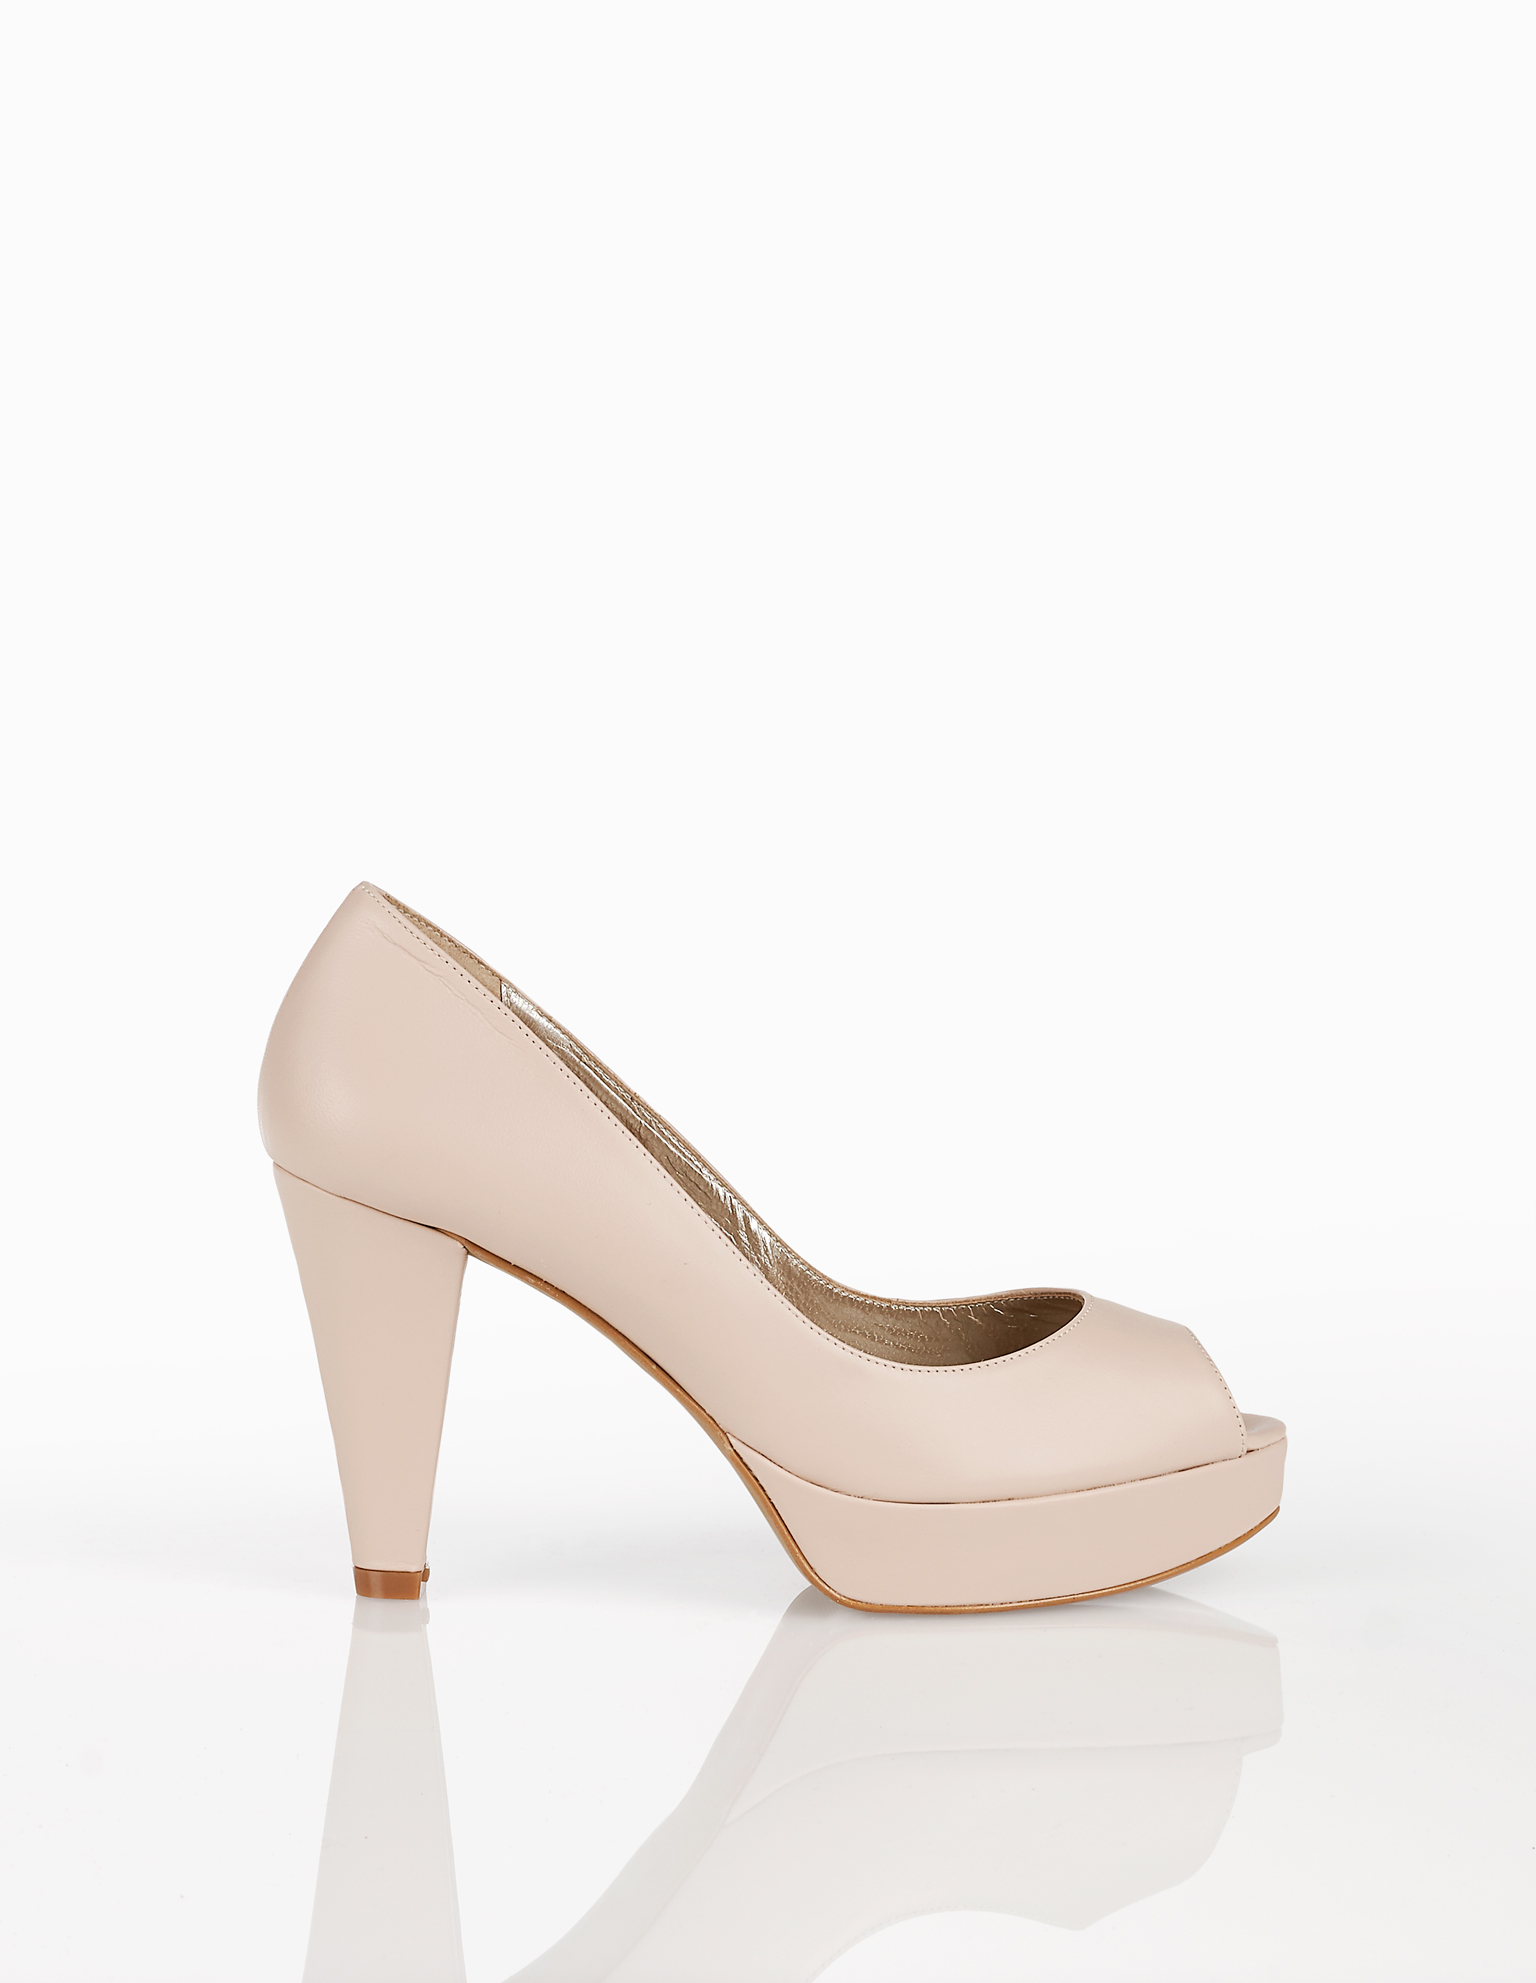 Peep-toe leather bridal platform shoes with high heel, available in natural, silver, nude and gold. 2018 AIRE BARCELONA Collection.